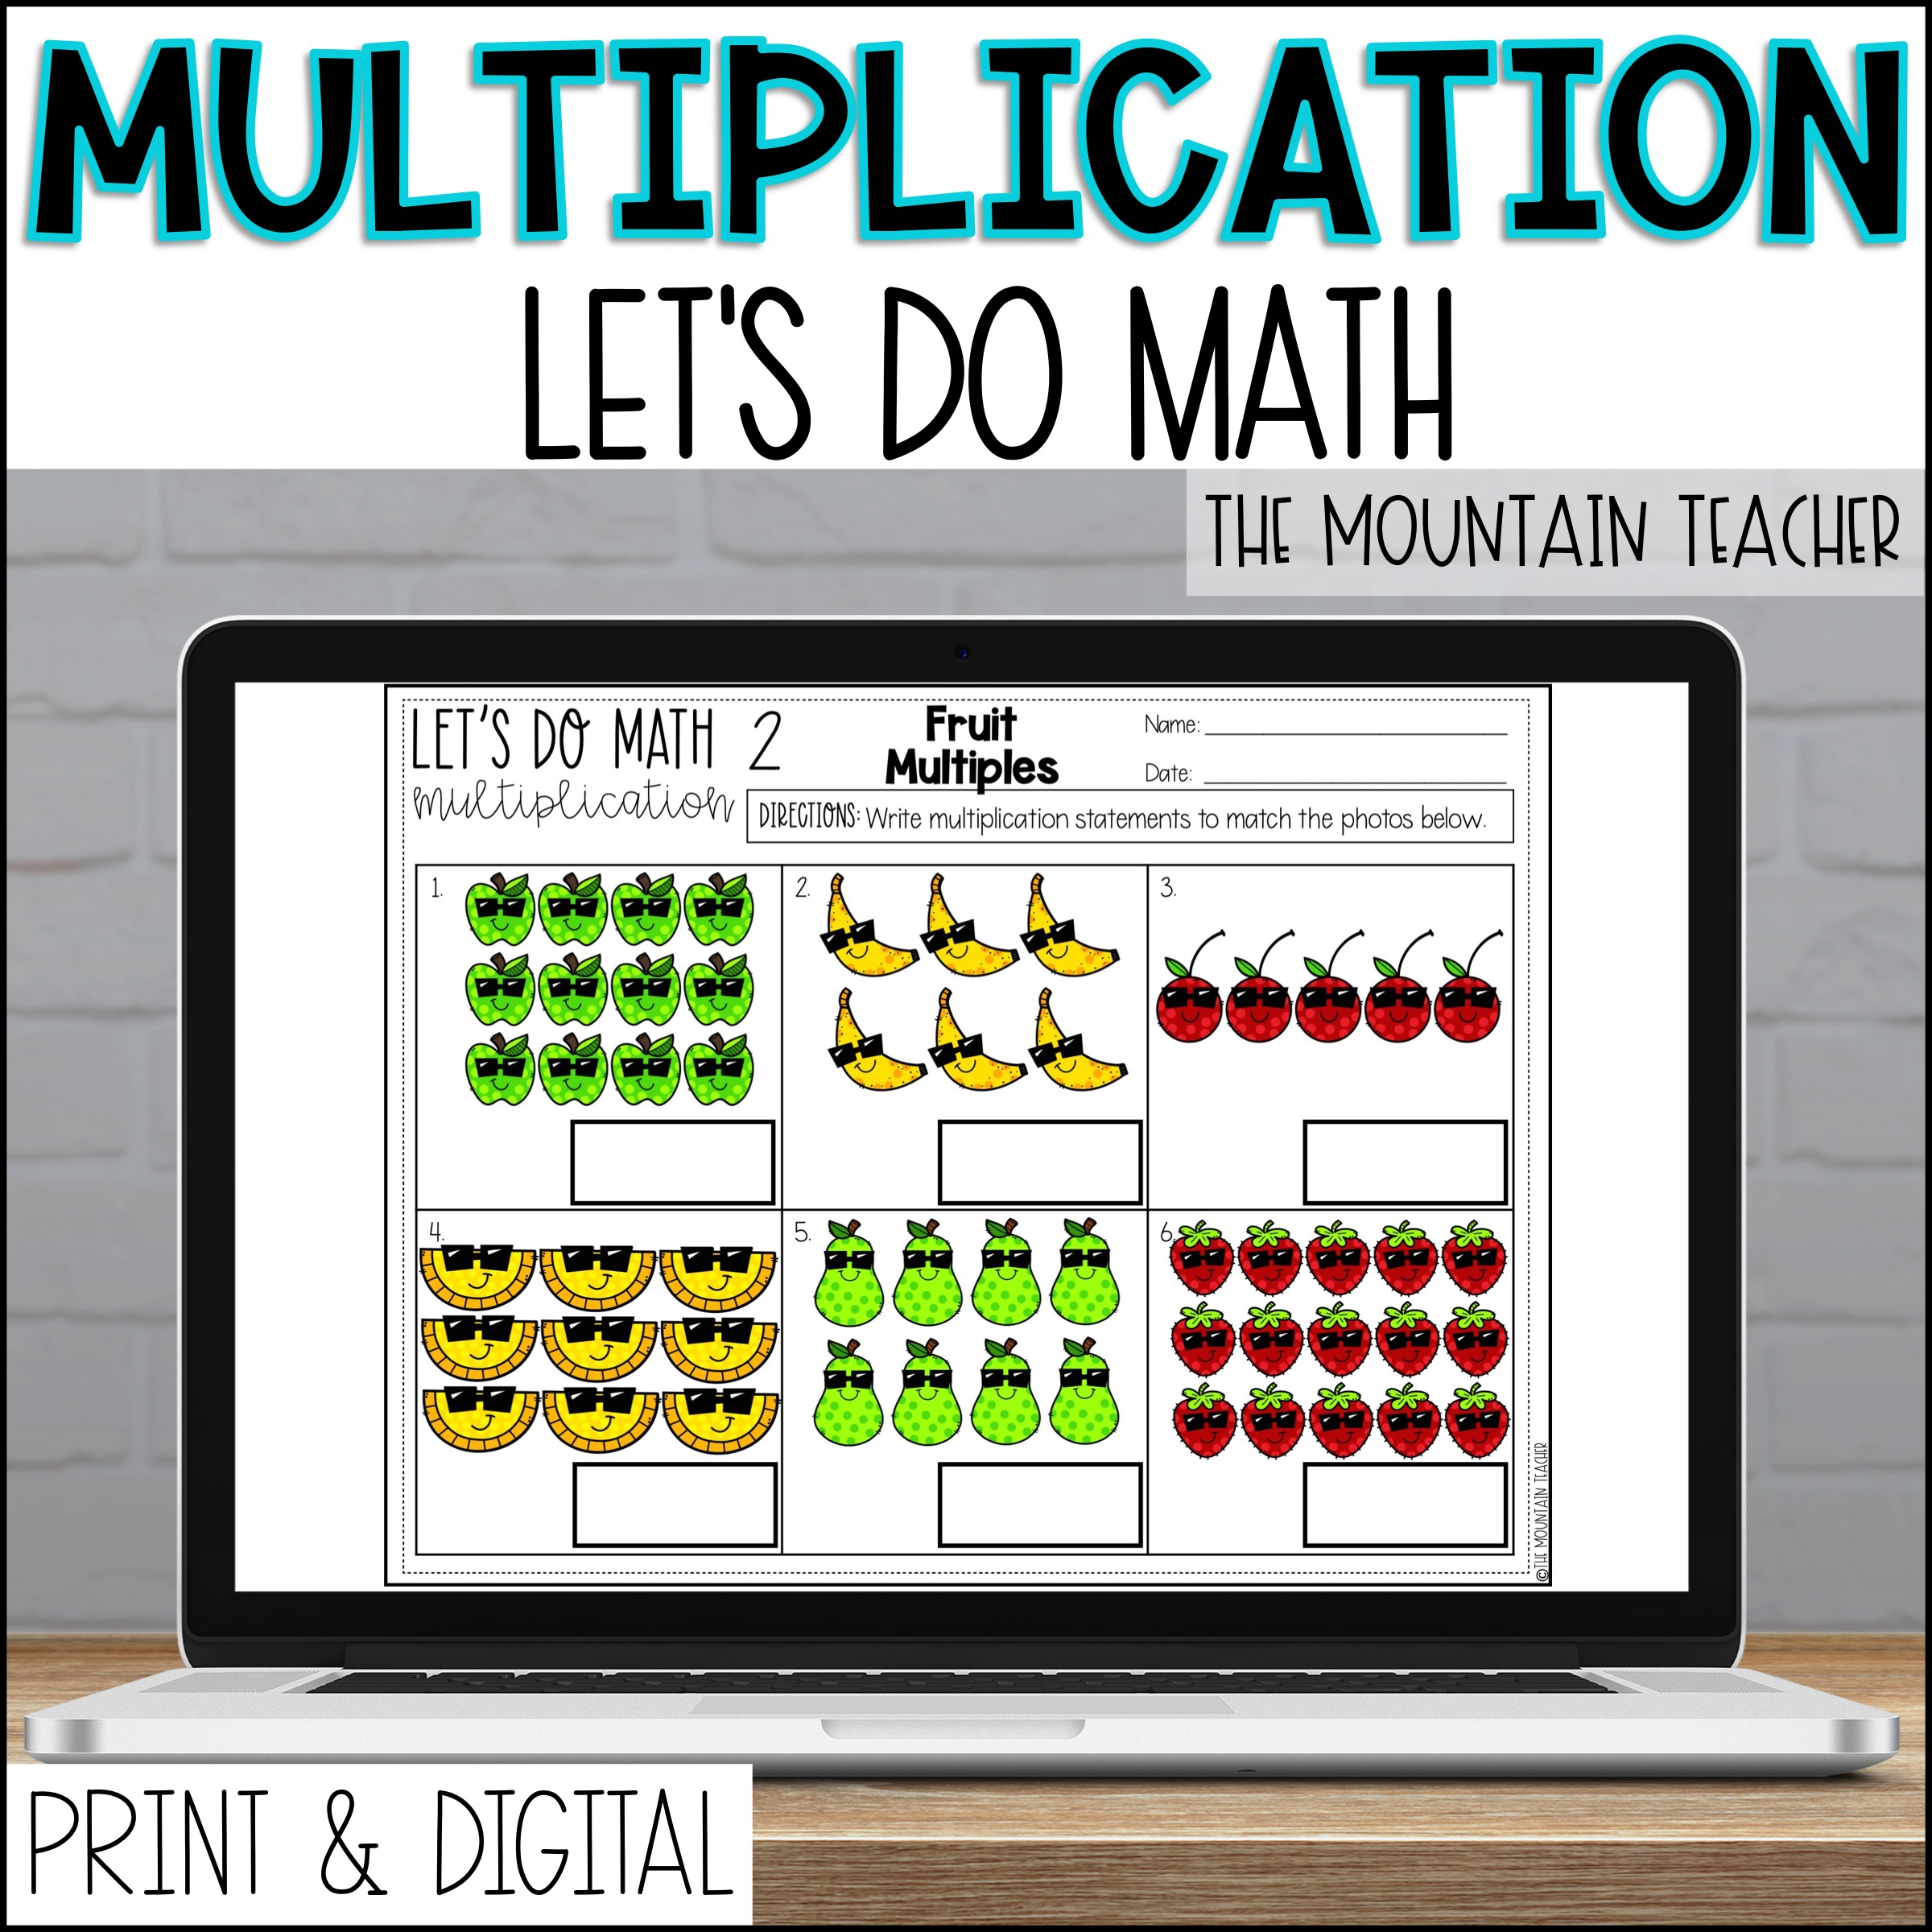 DIGITAL Multiplication Unit for 2nd Grade Arrays Repeated Addition Number Line By The Mountain Teacher